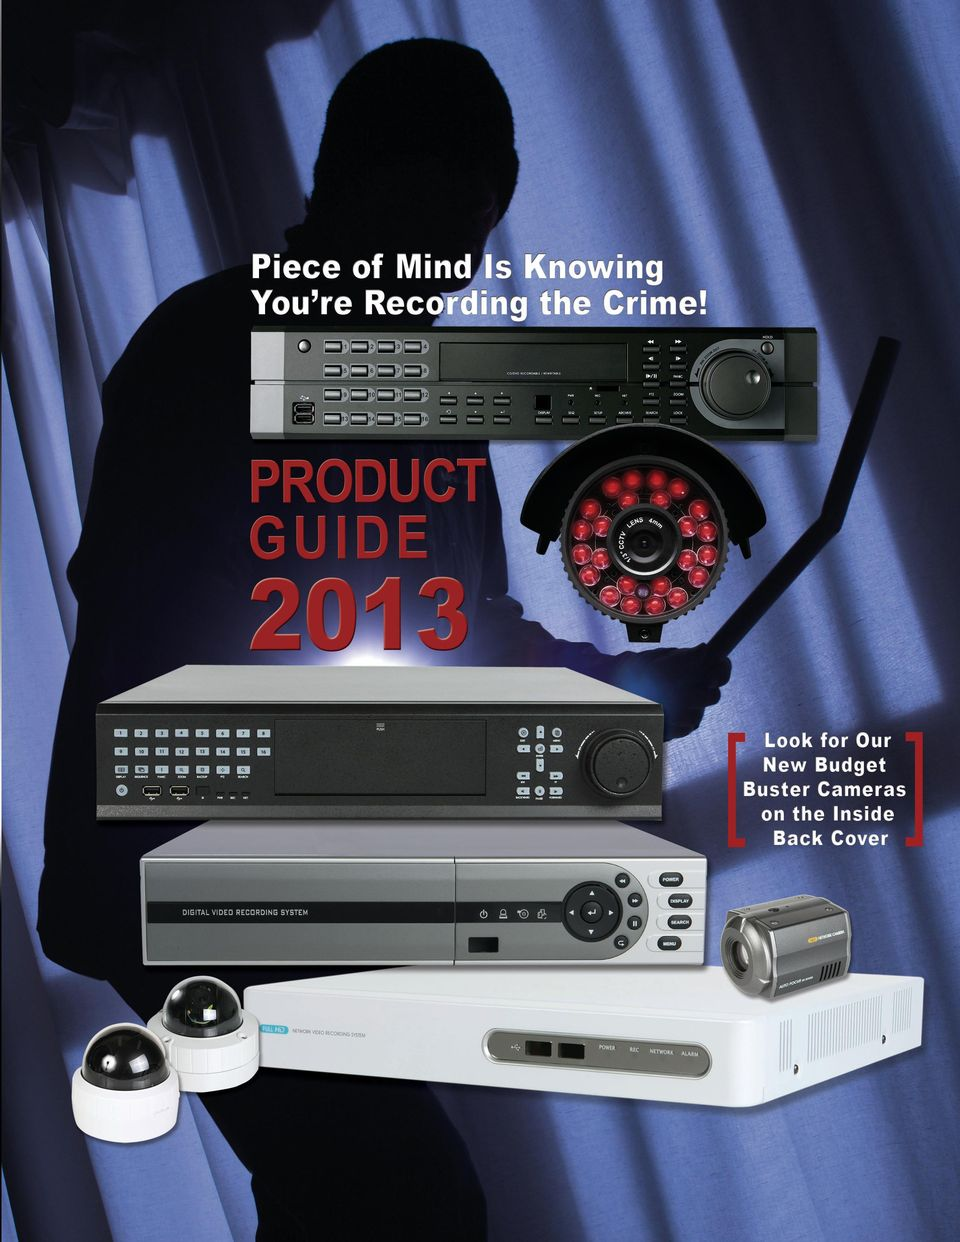 DVR SERIES C-MAX 16 PRO-D4/D8/D16 SOON!: PLATINUM DVR S WITH